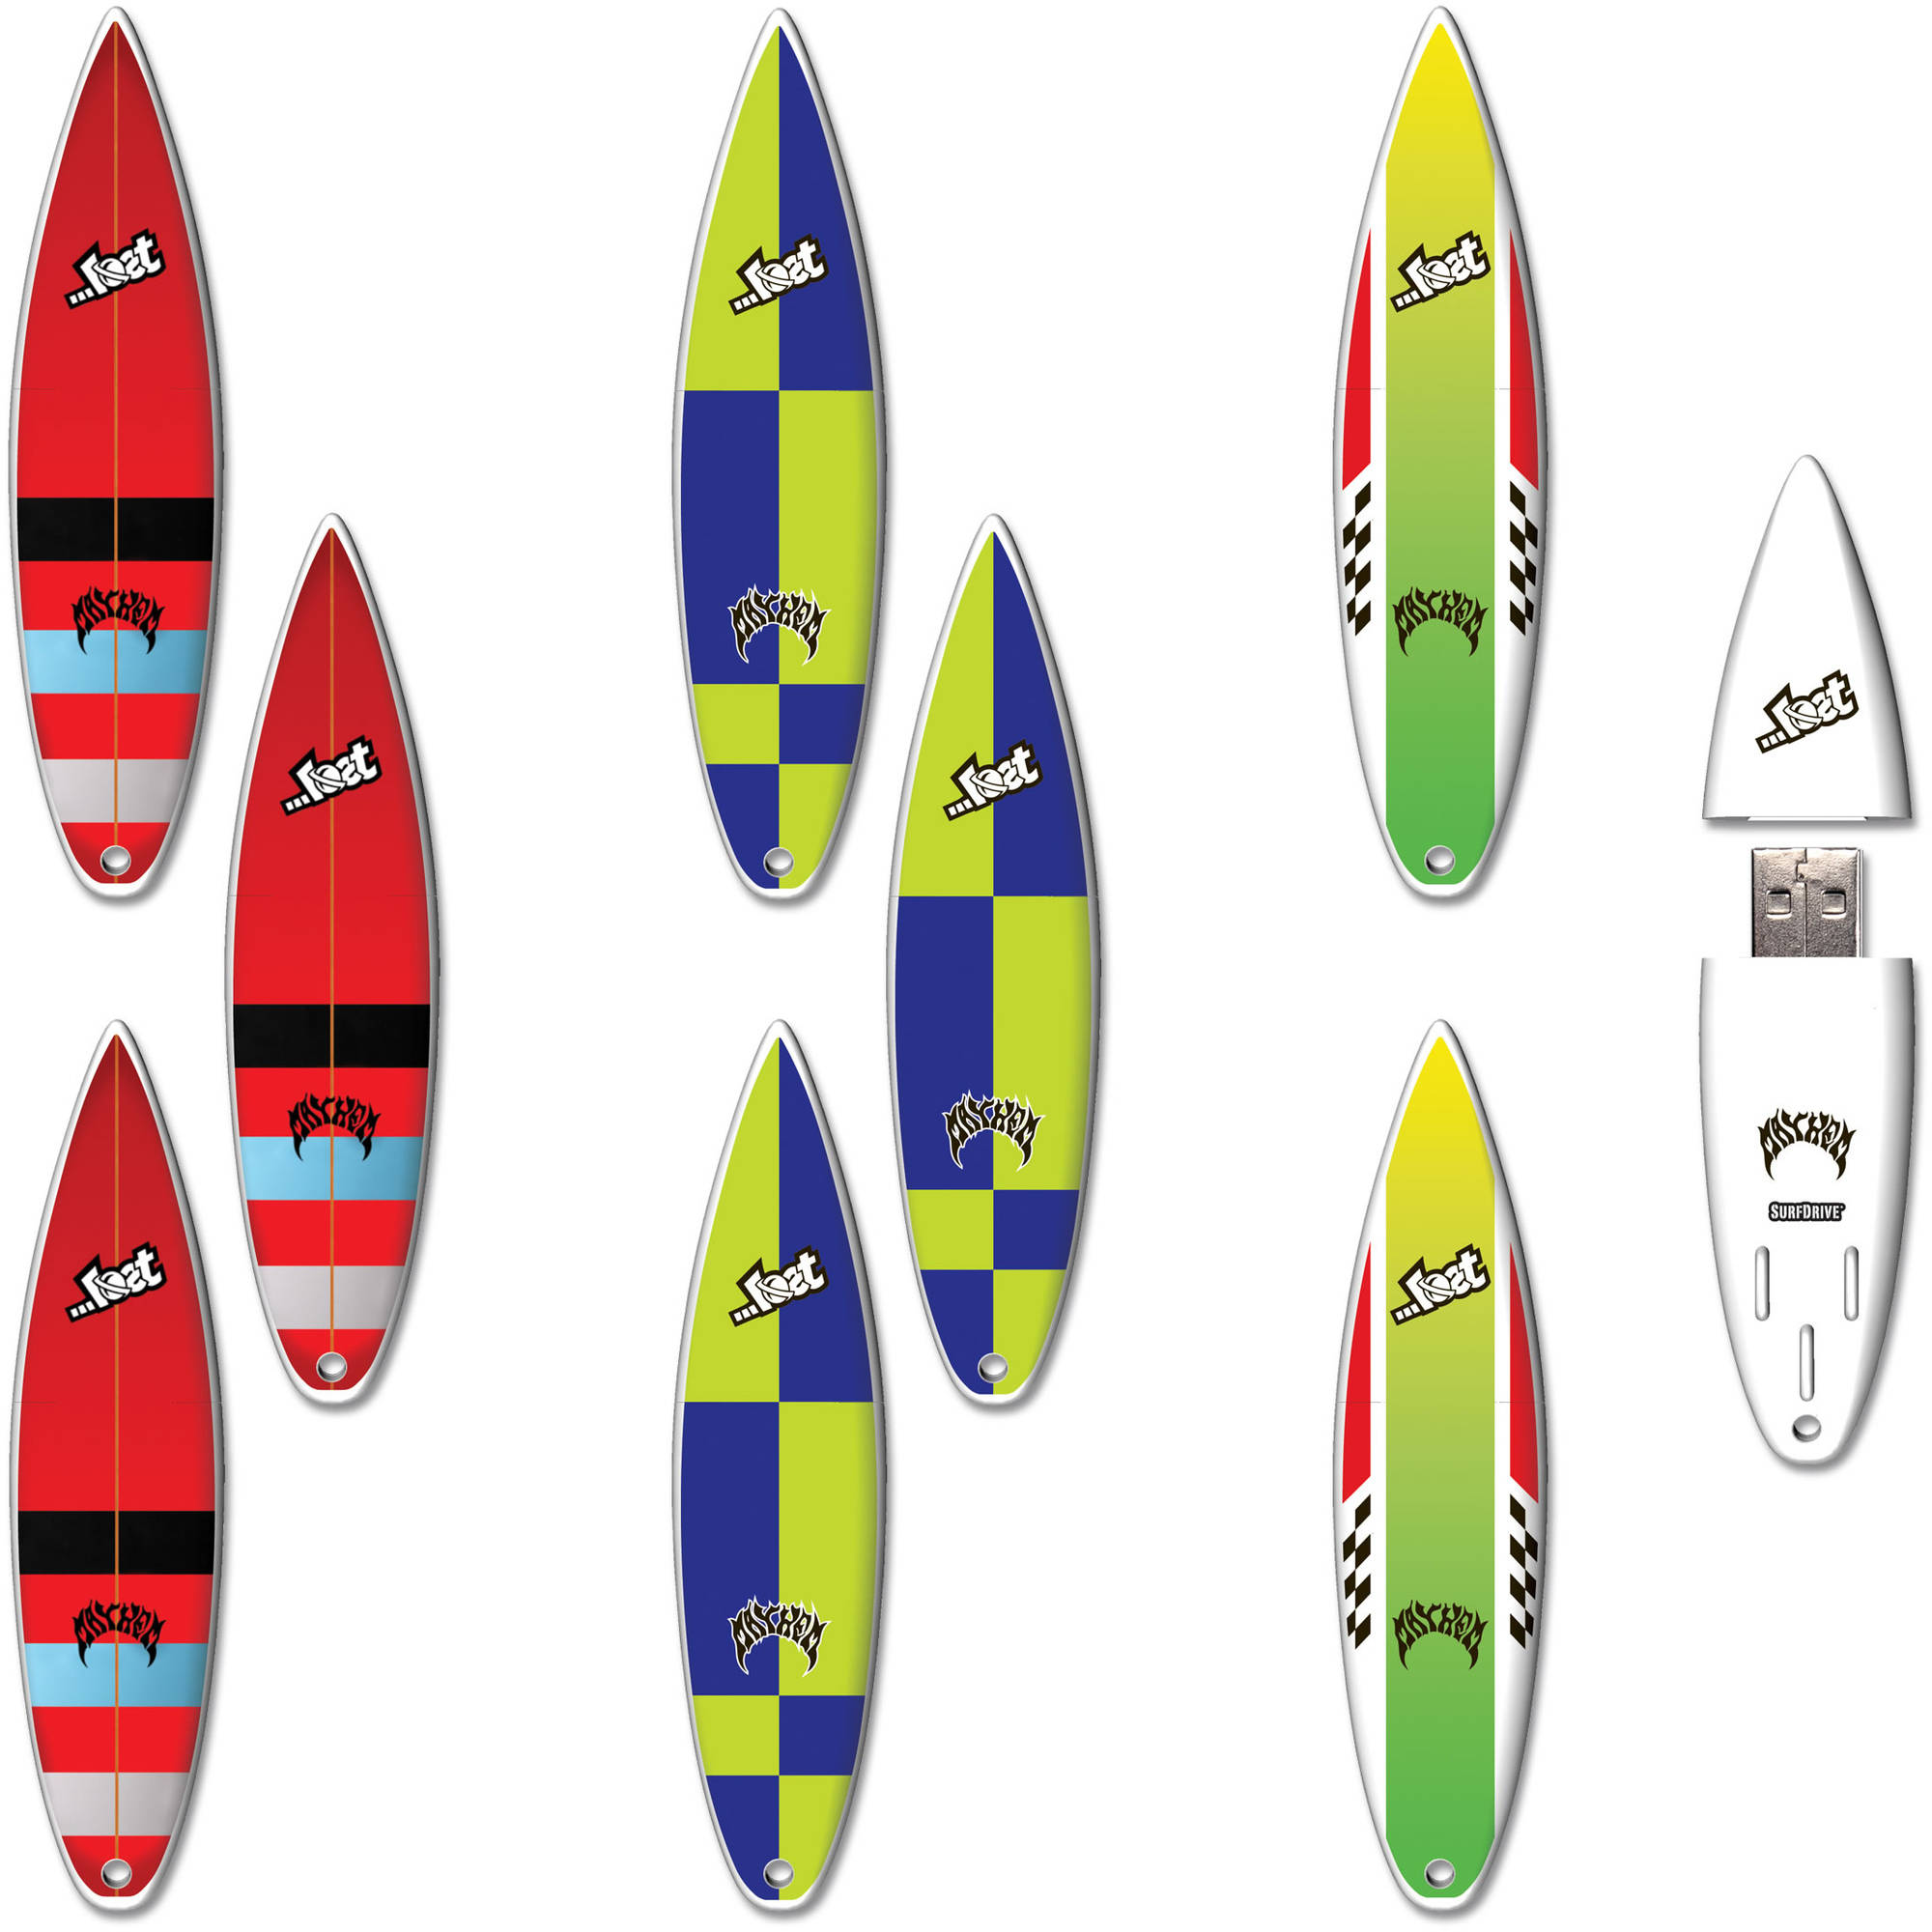 8GB SurfDrive Lost: Bottom Feeder, RV2, Horan USB Flash Drive, 9-Pack